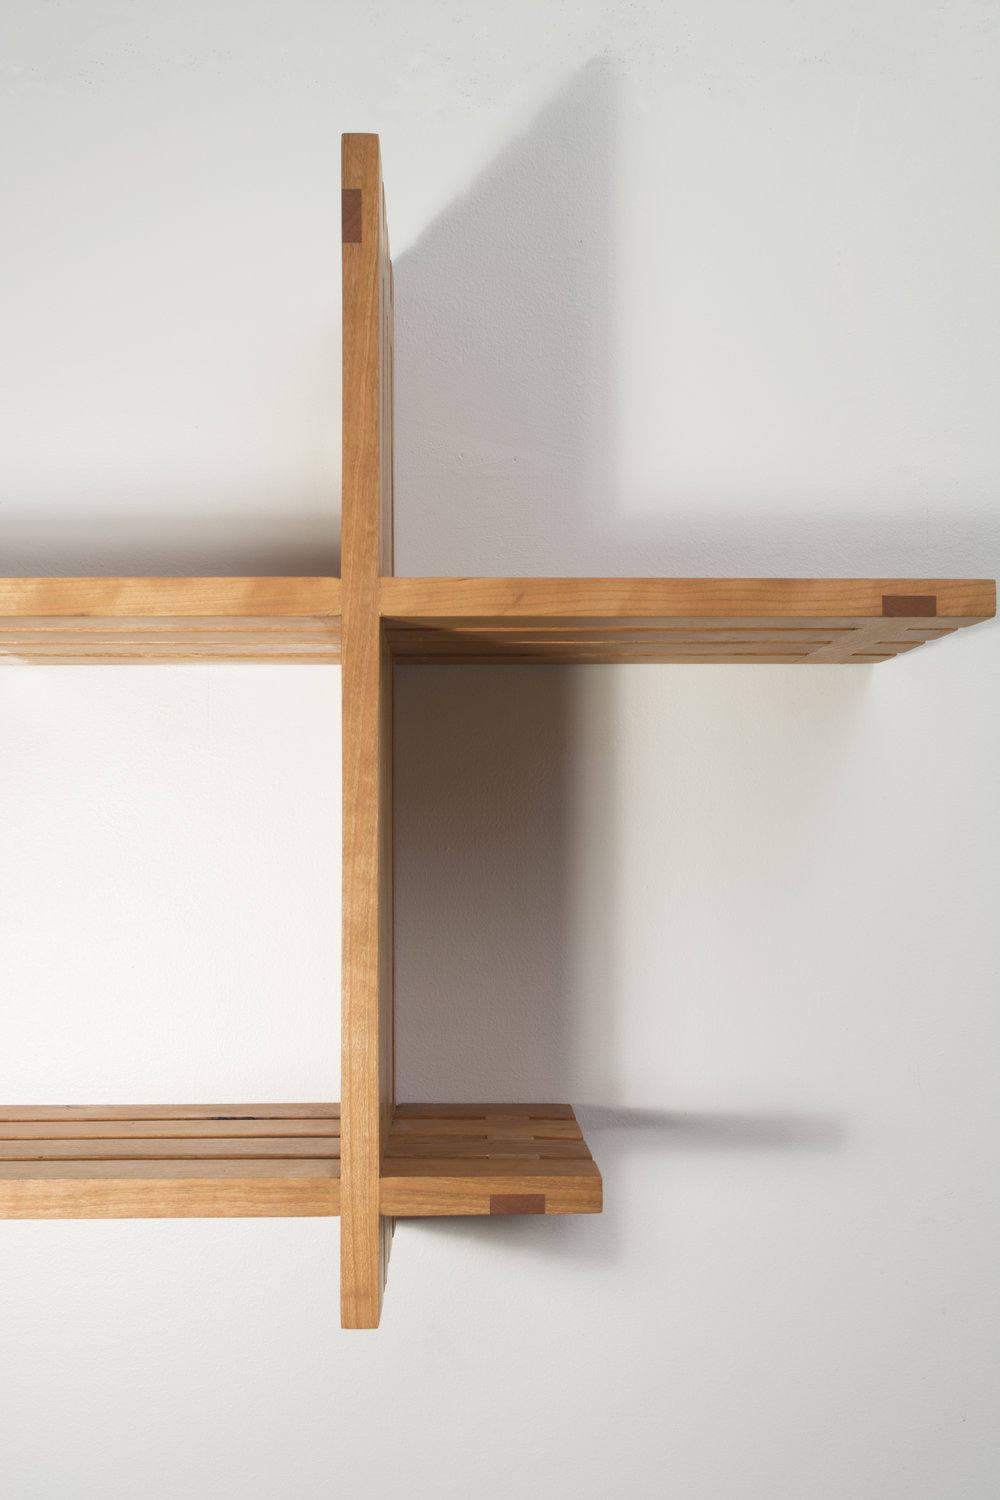 CROSS shelving